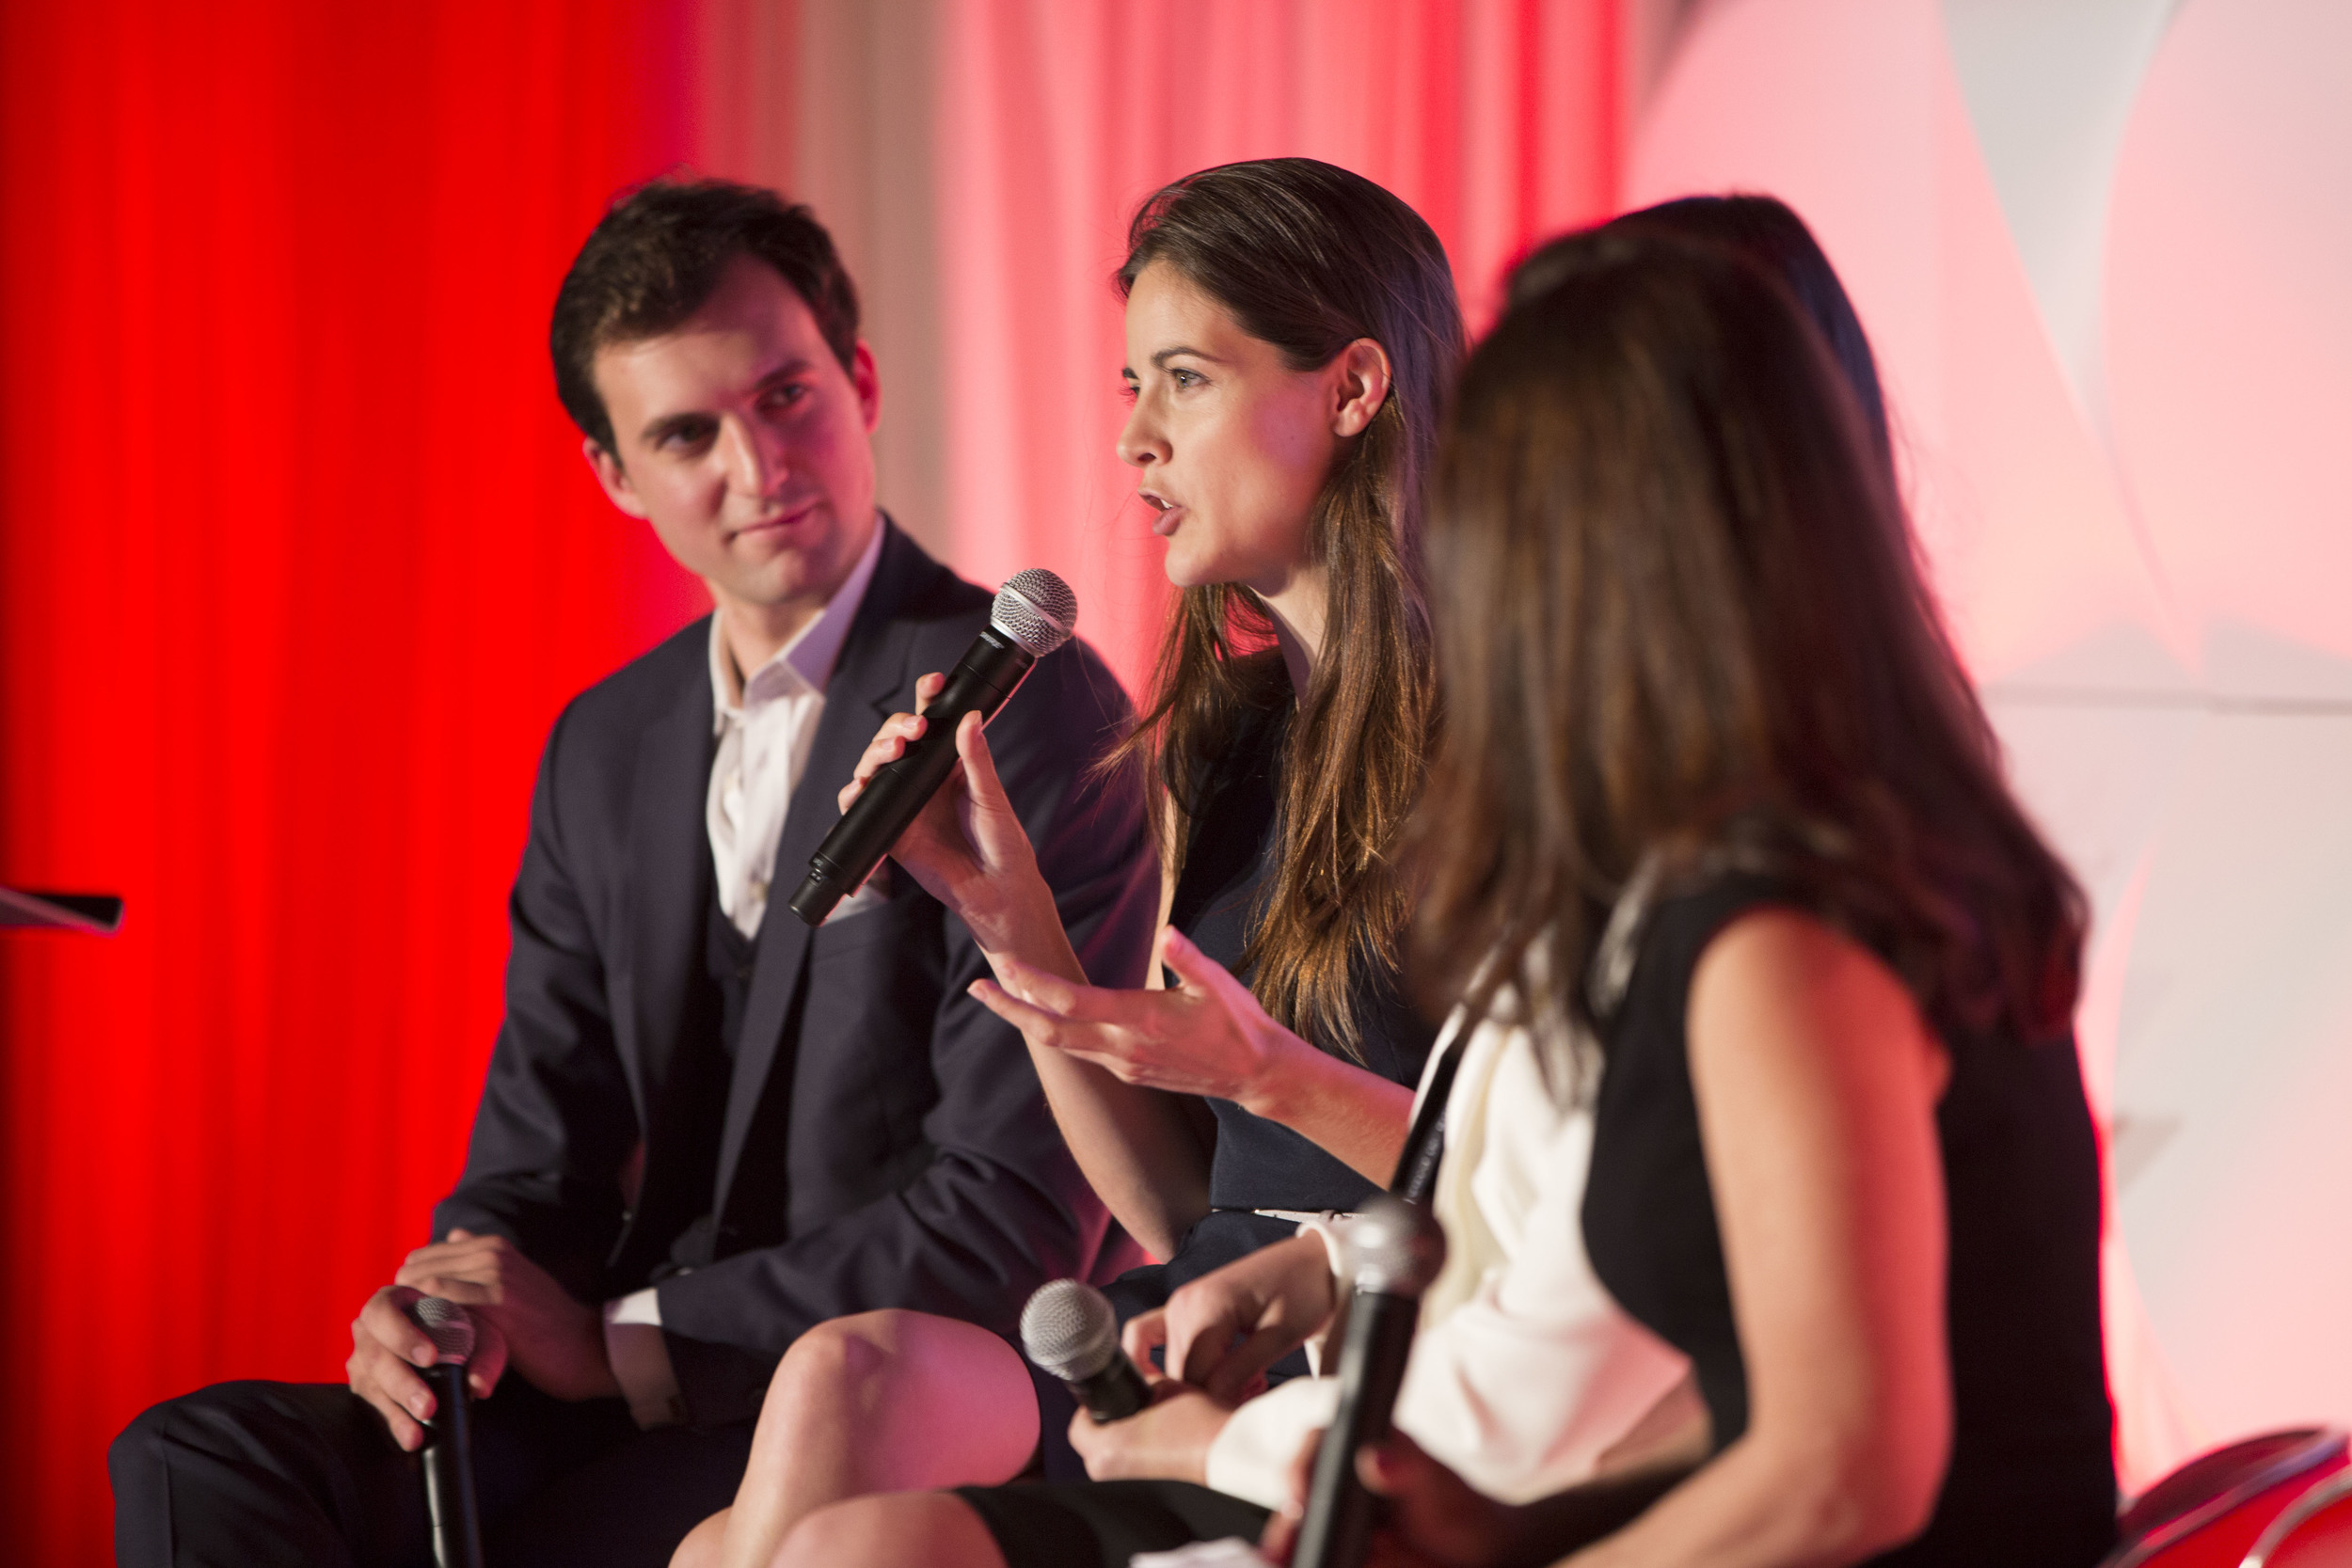 Kathryn Minshew, CEO and Co-founder of The Muse